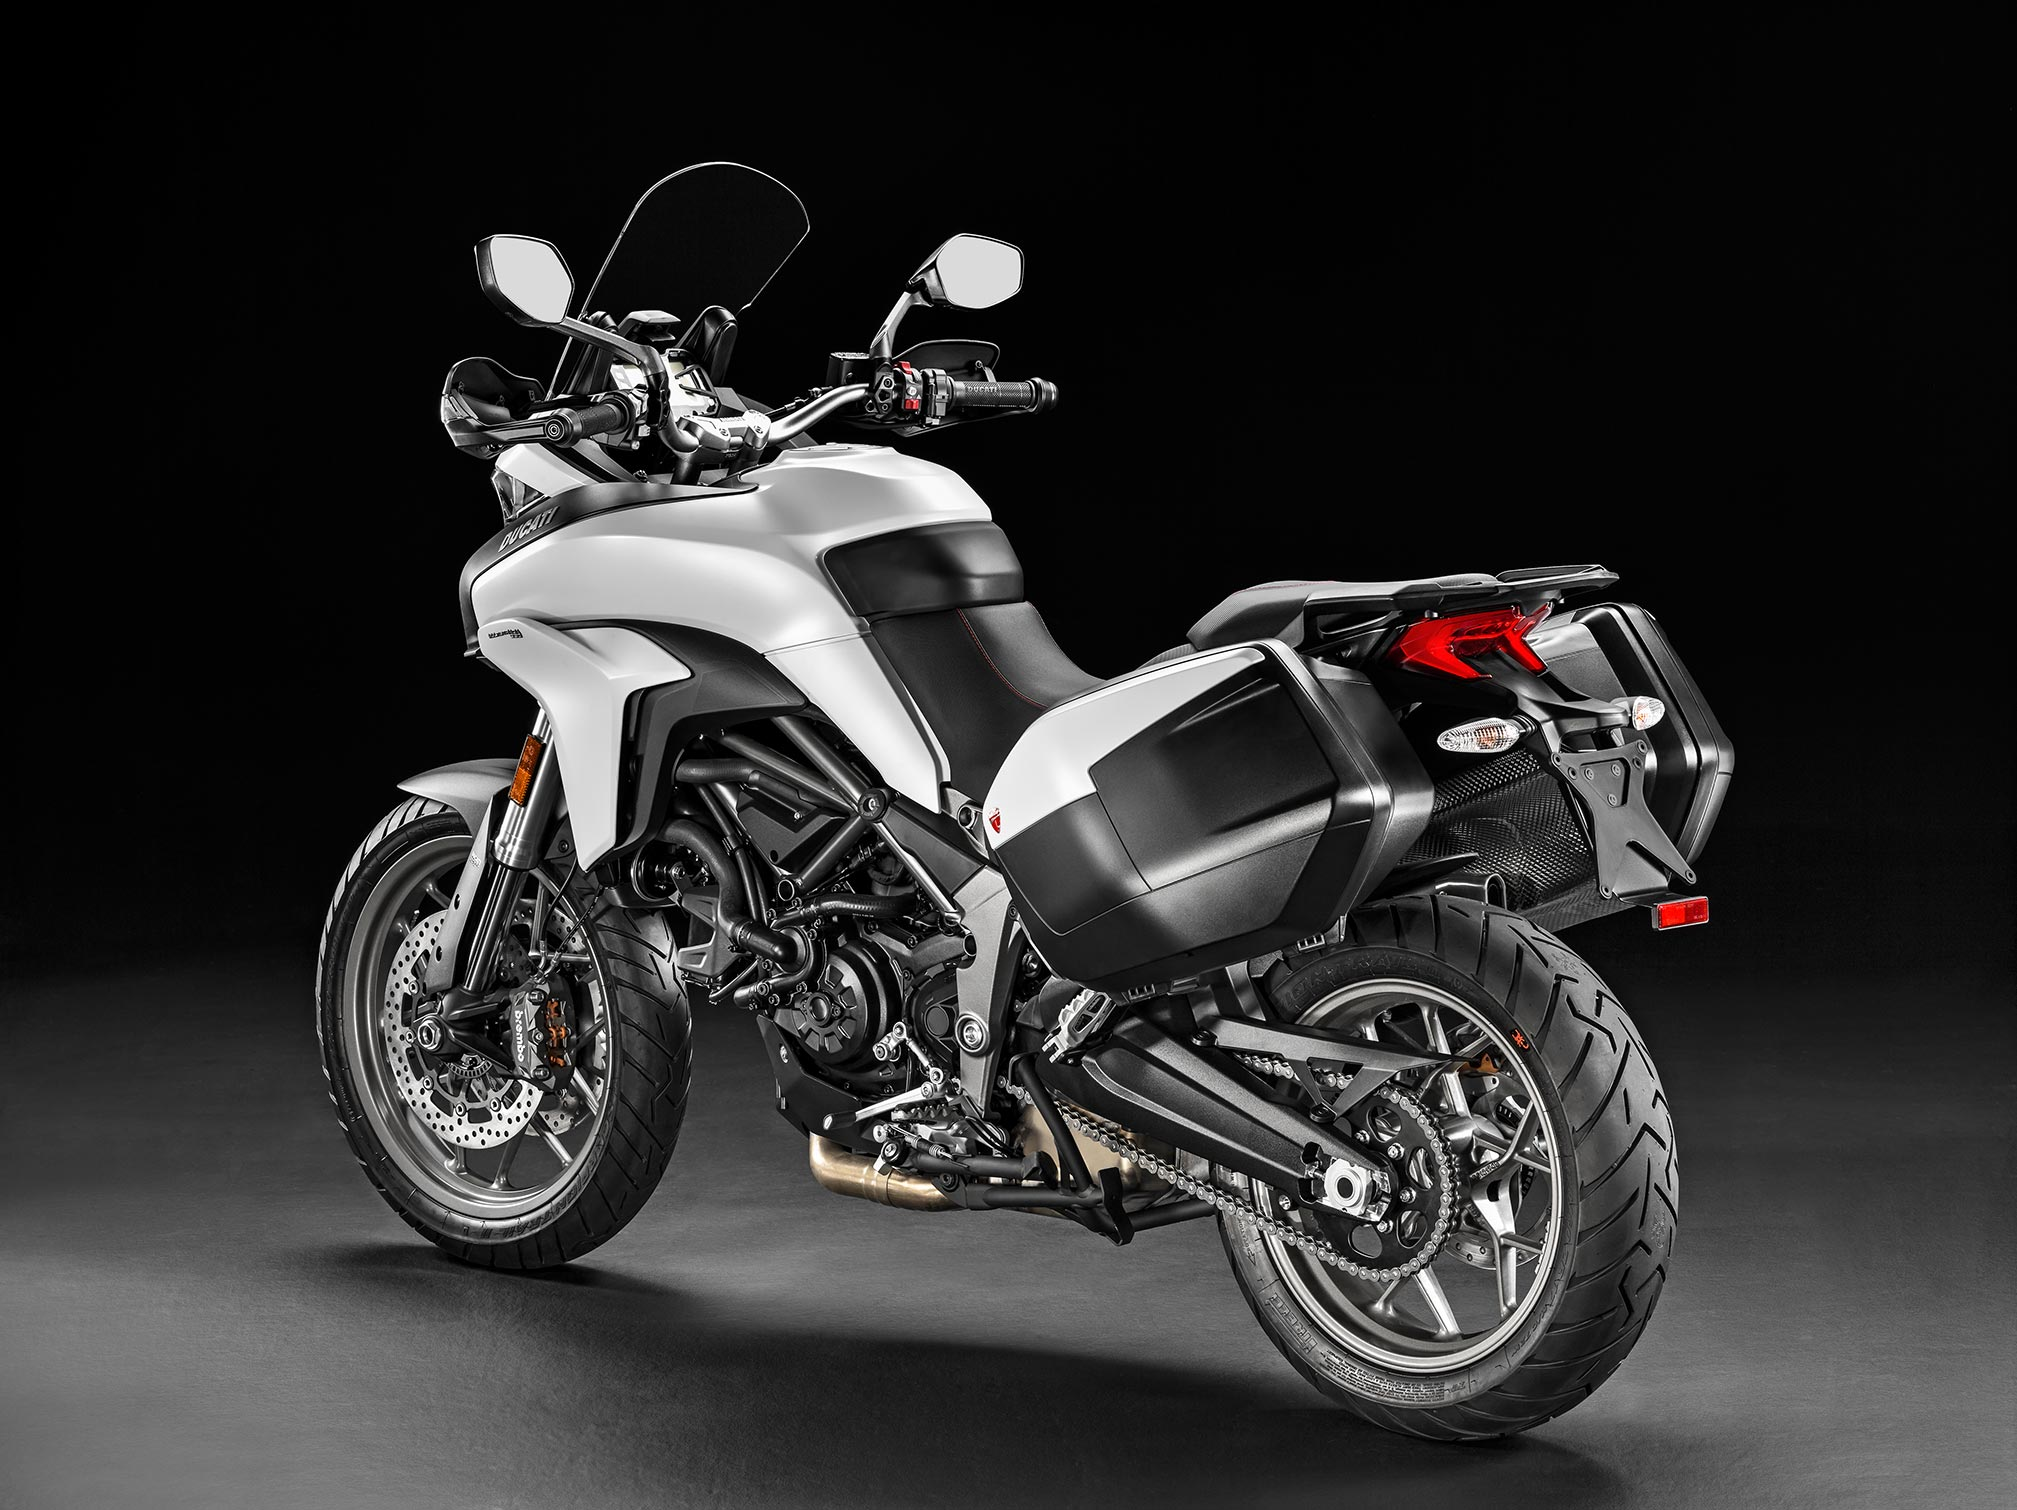 2017 ducati multistrada 950 review. Black Bedroom Furniture Sets. Home Design Ideas